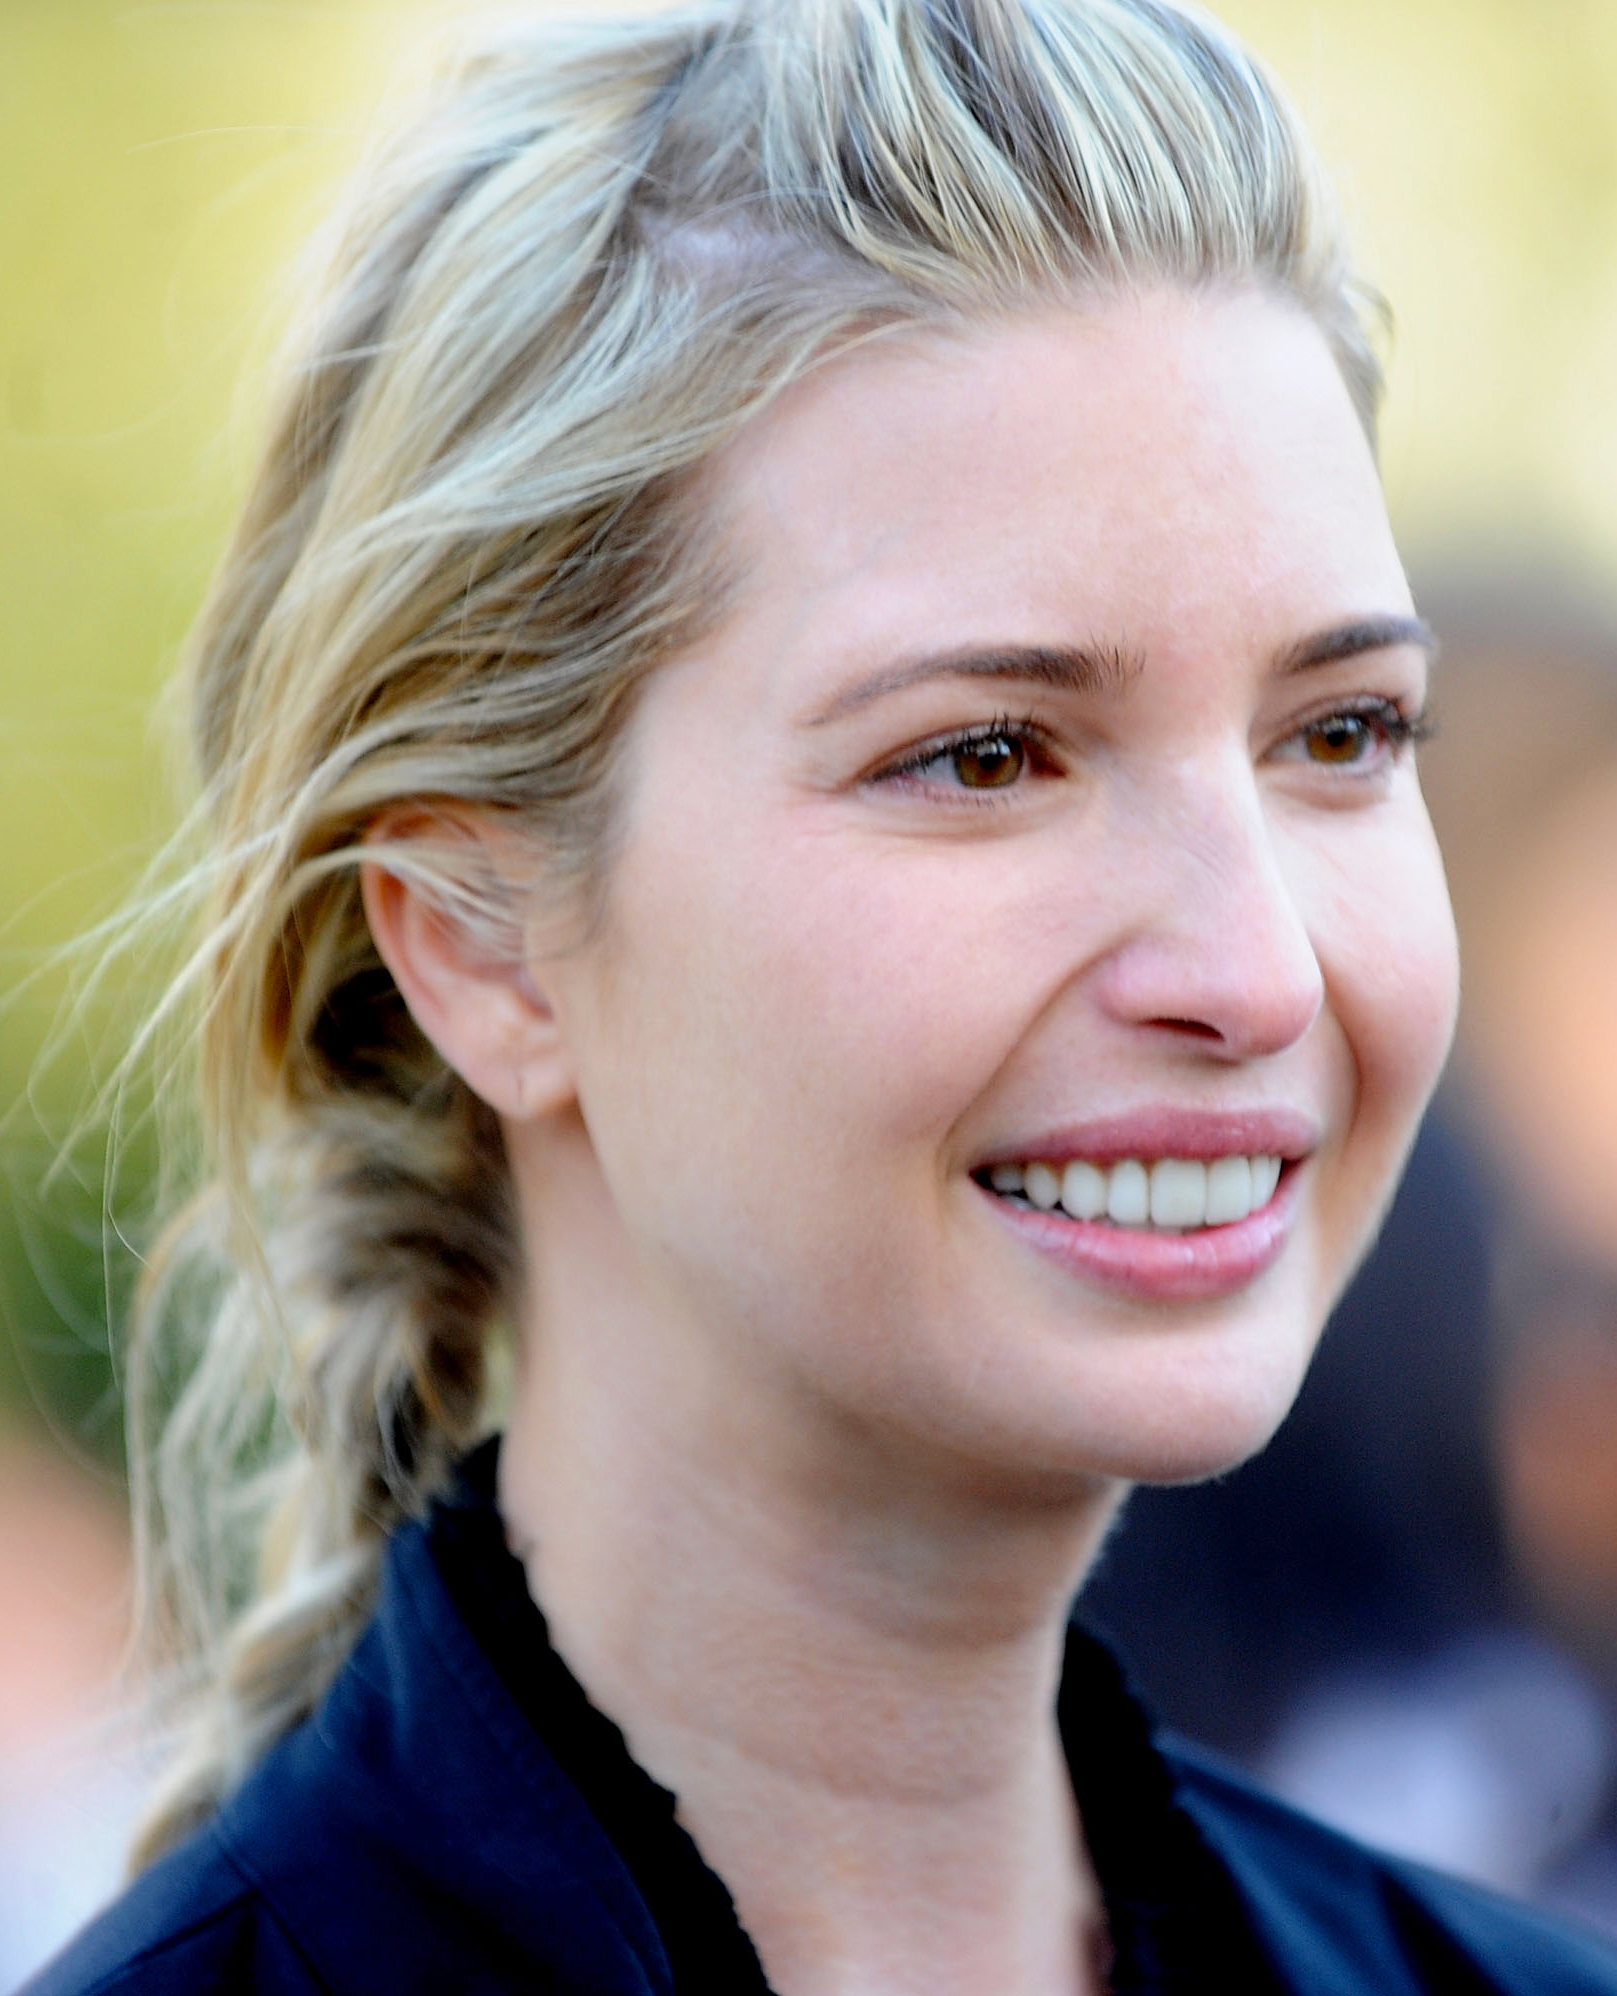 ivanka trump old picture